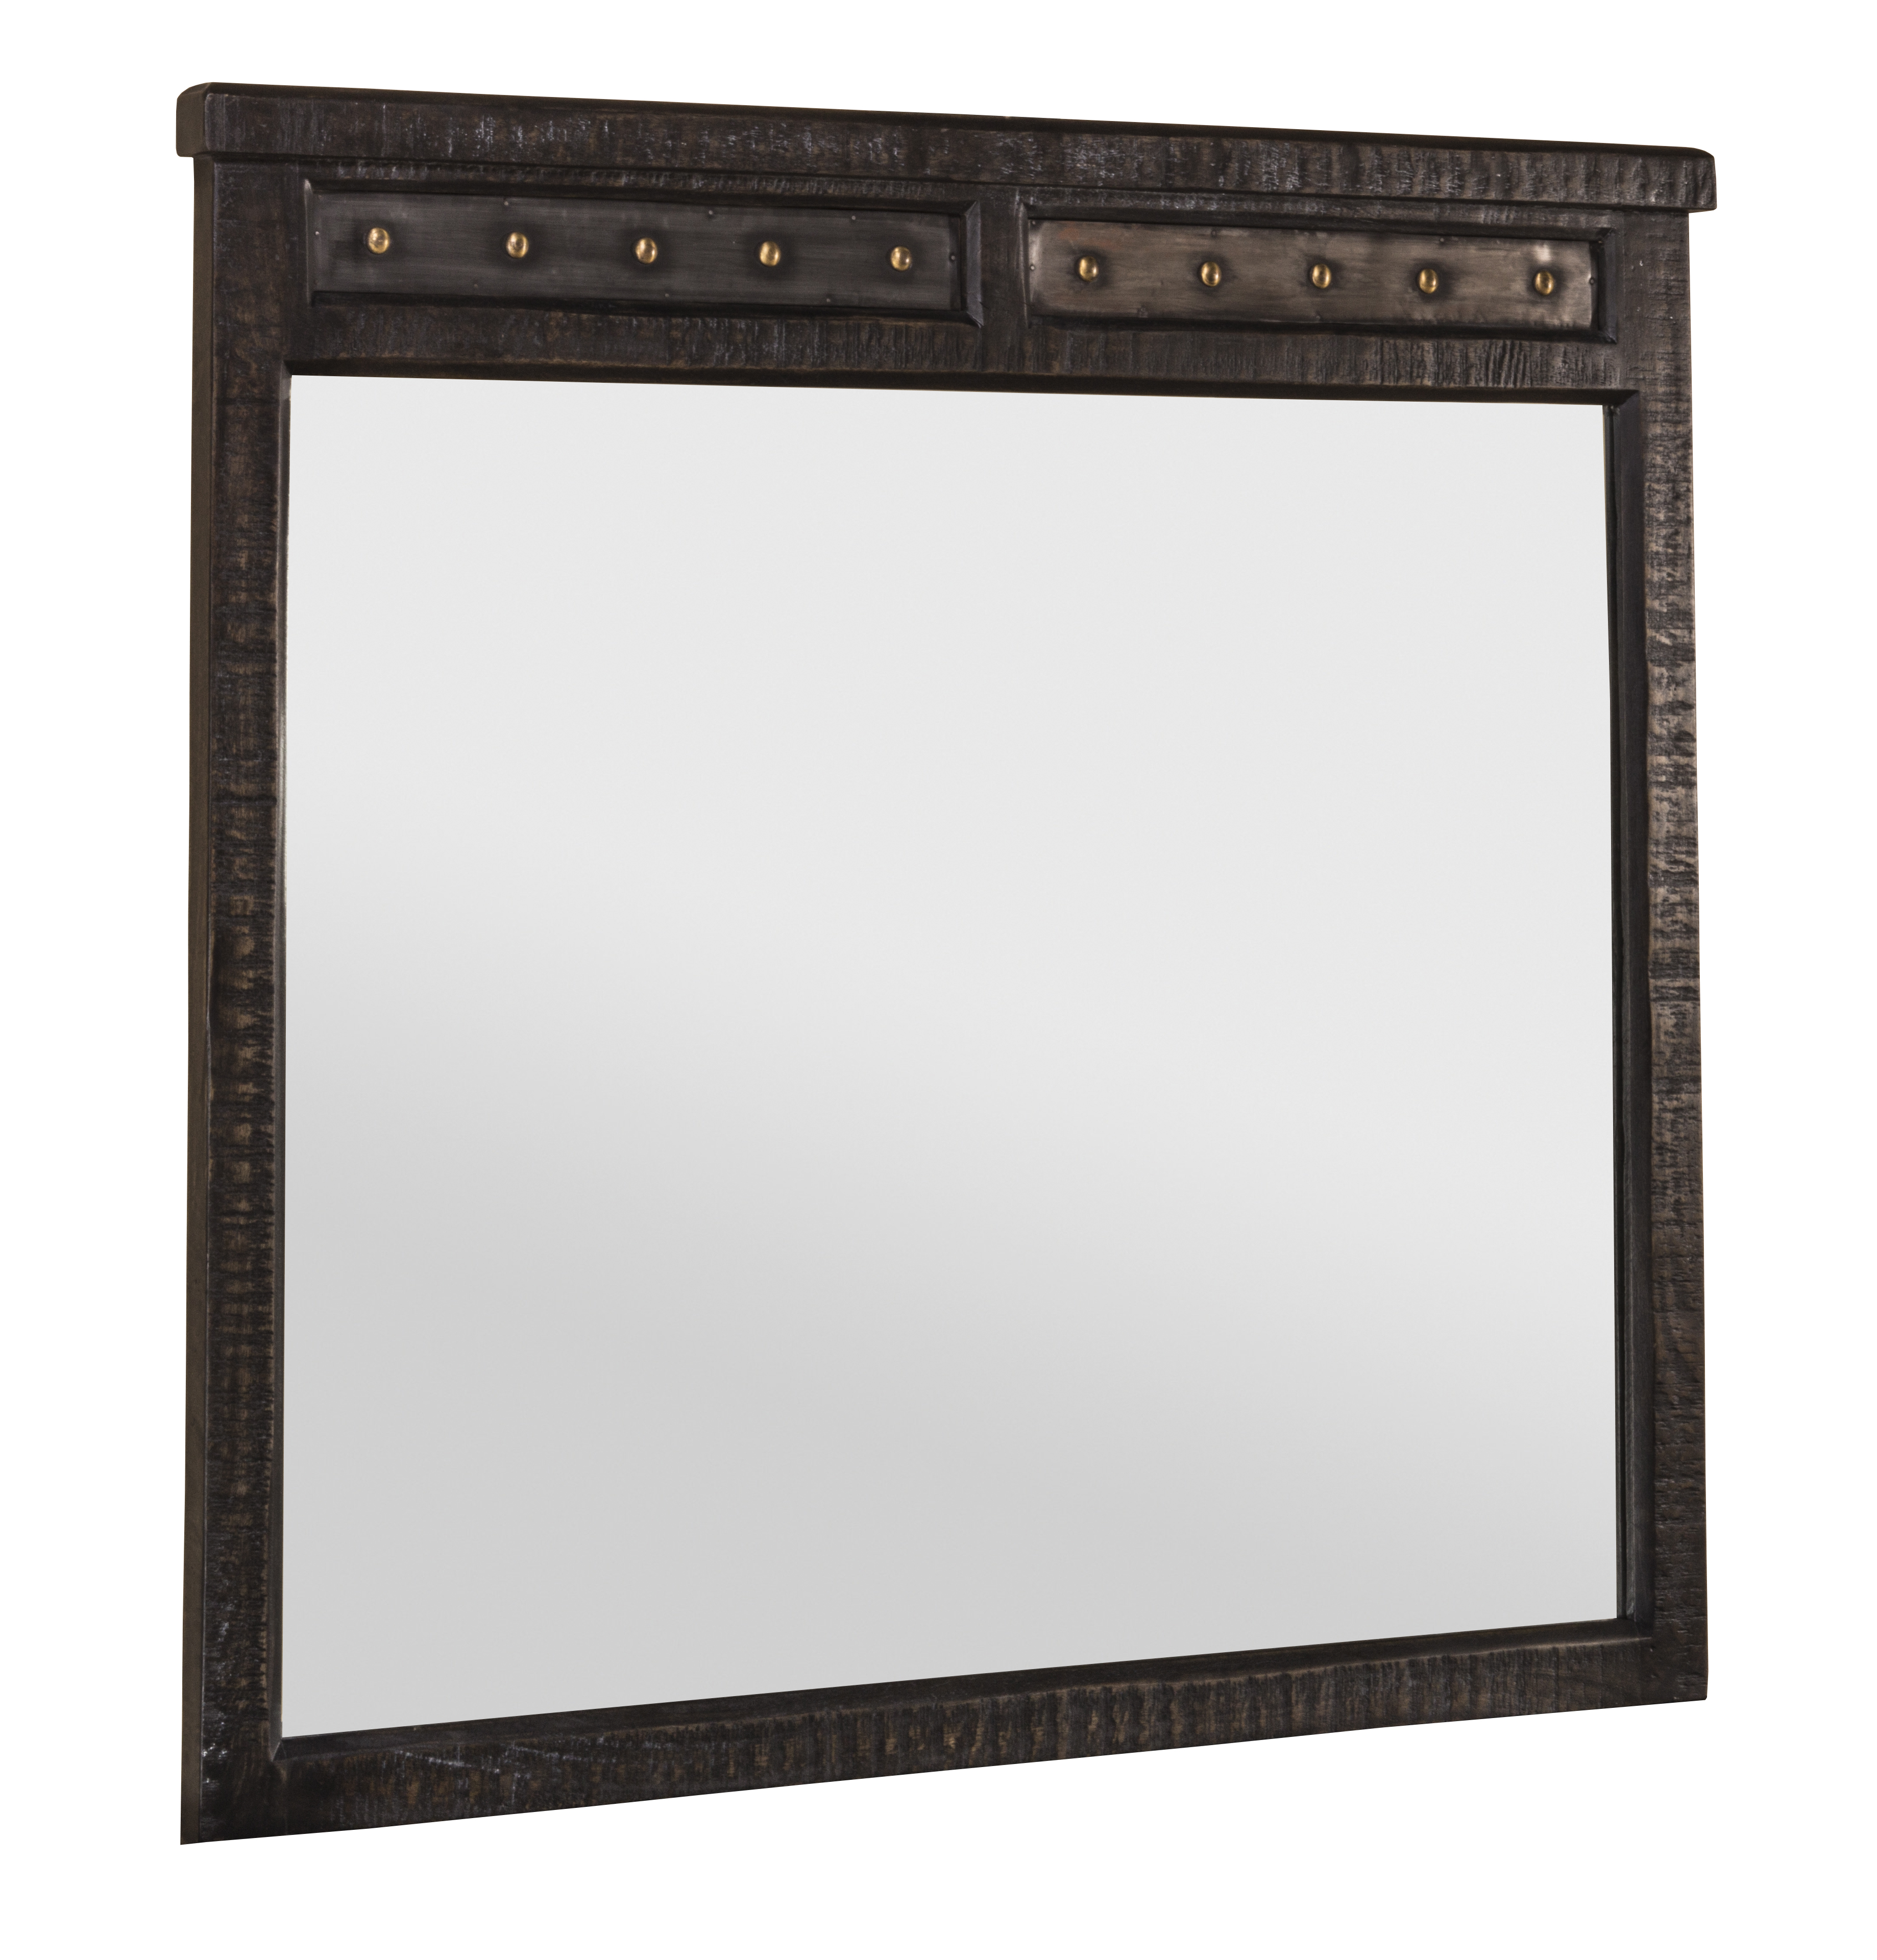 Hillsdale Furniture Bolt Mirror - Dark Graywash